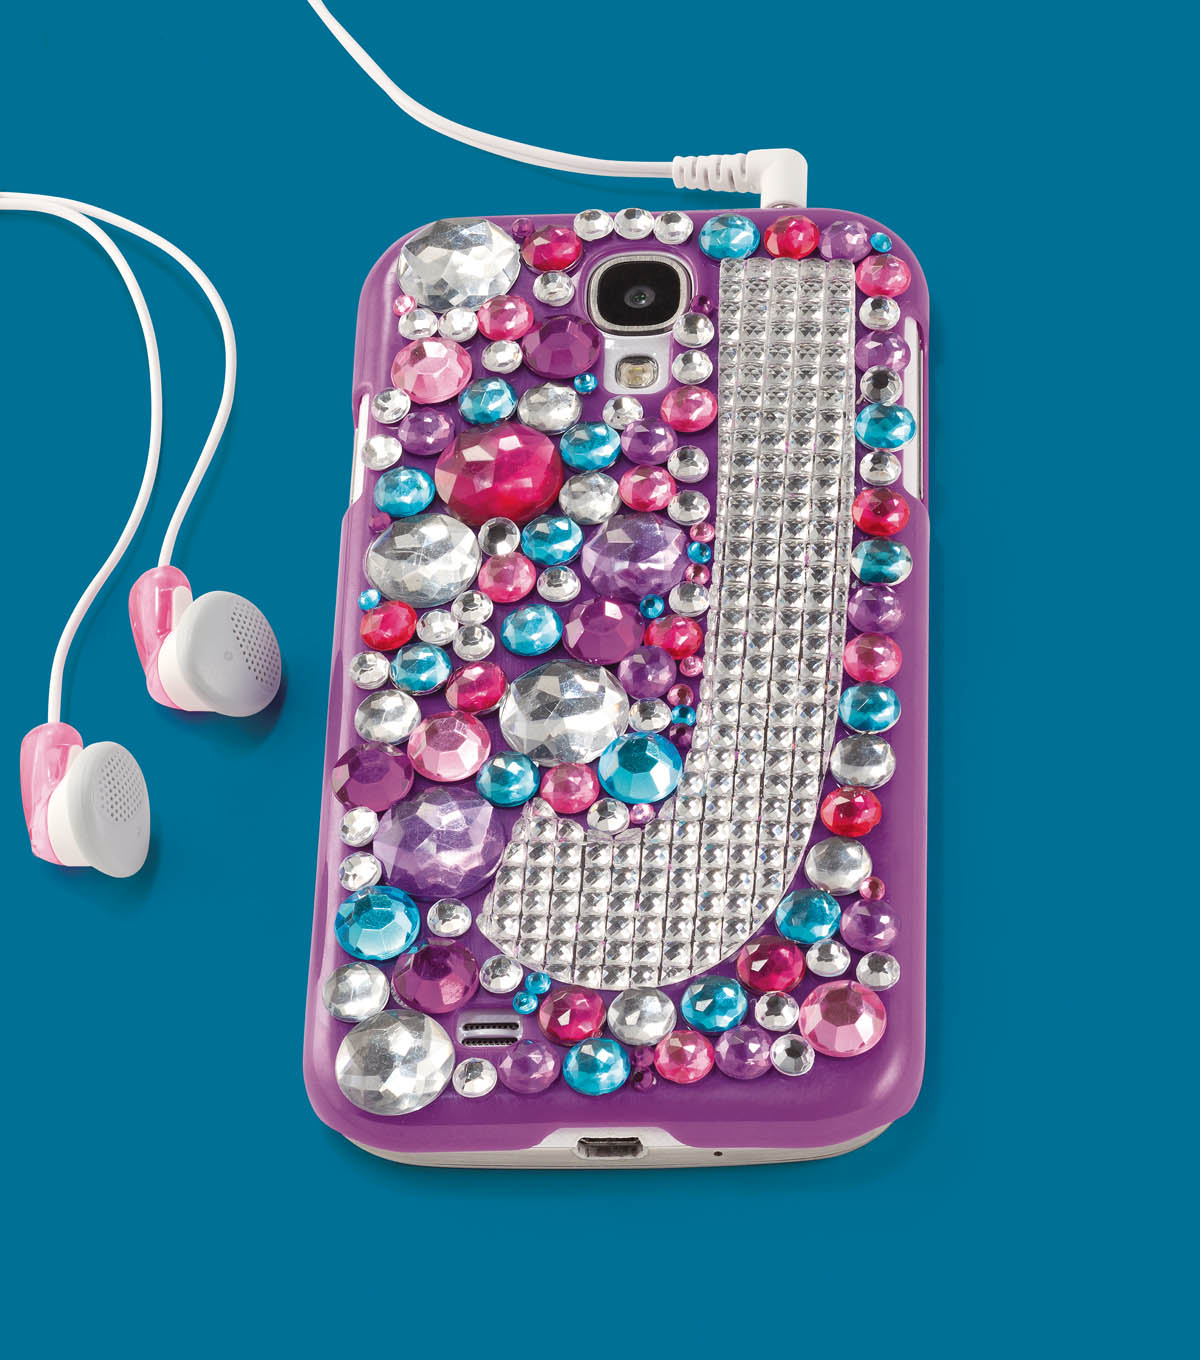 The Big Bling Cell Phone Case